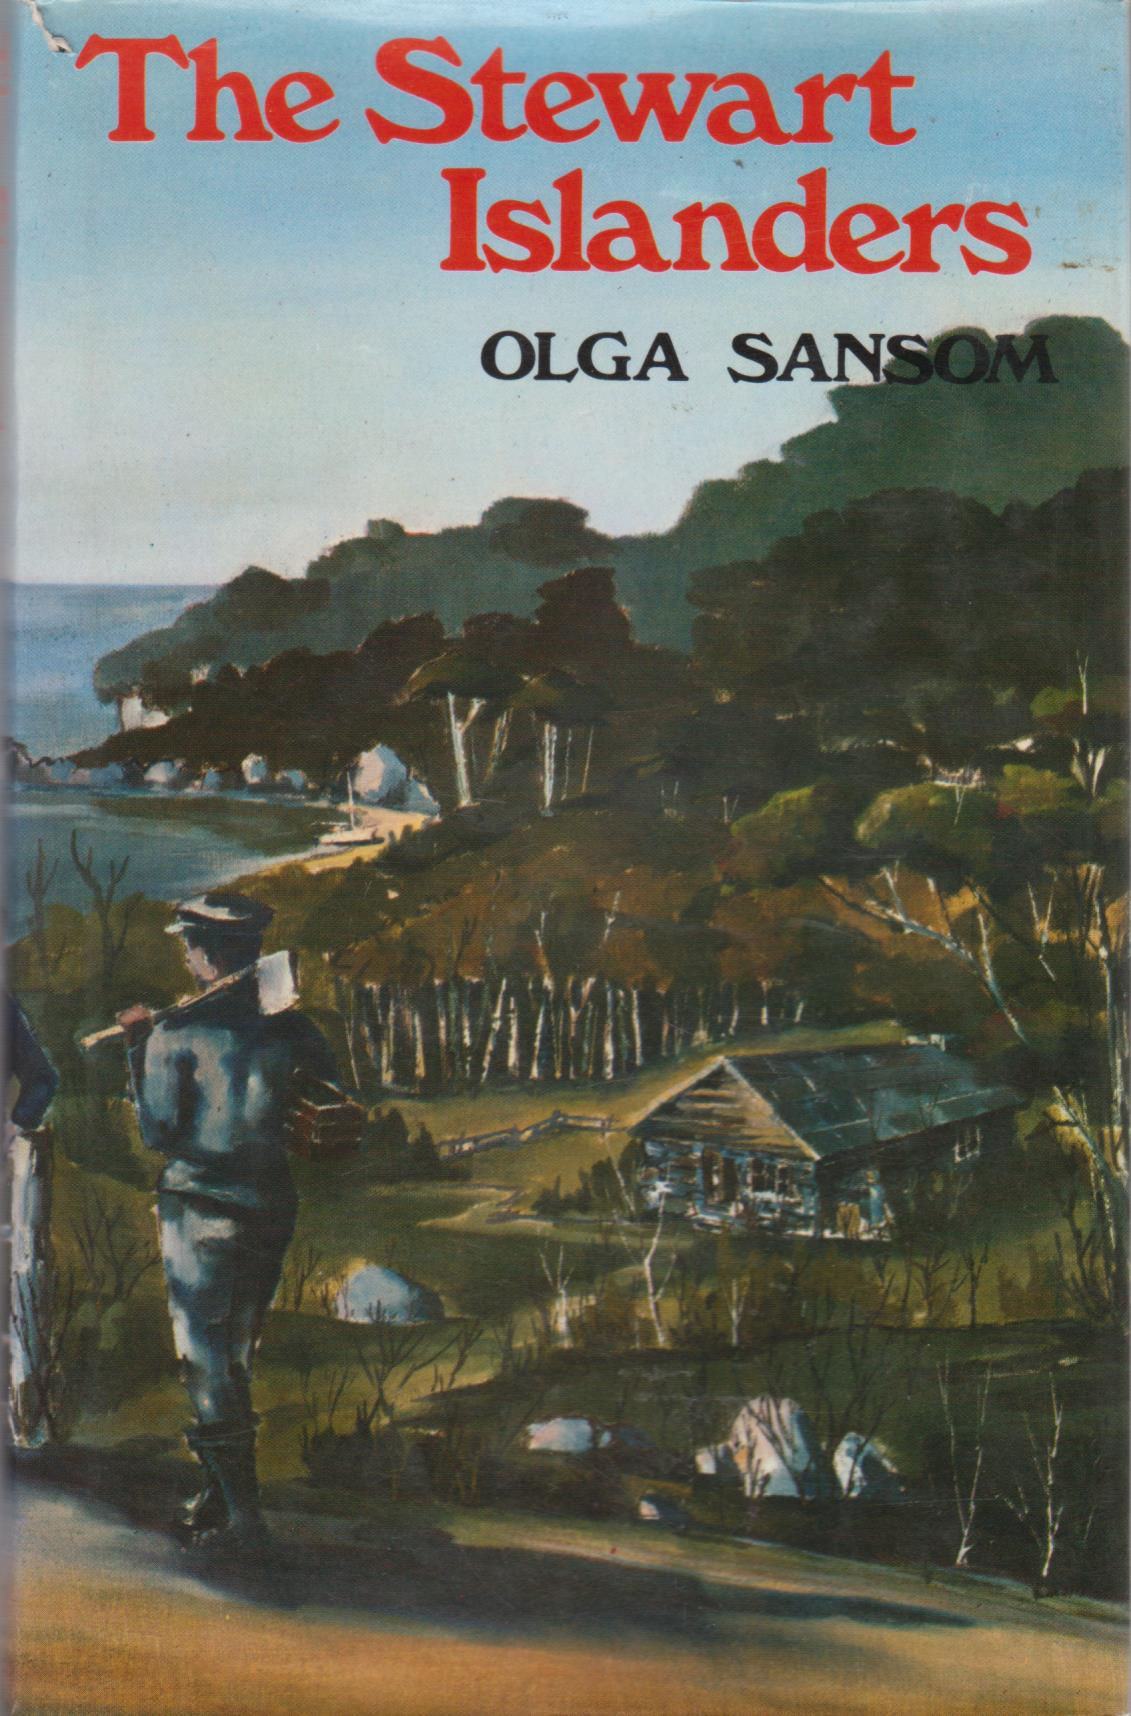 cover image of The Stewart Islanders by Olga Sansom for sale in New Zealand